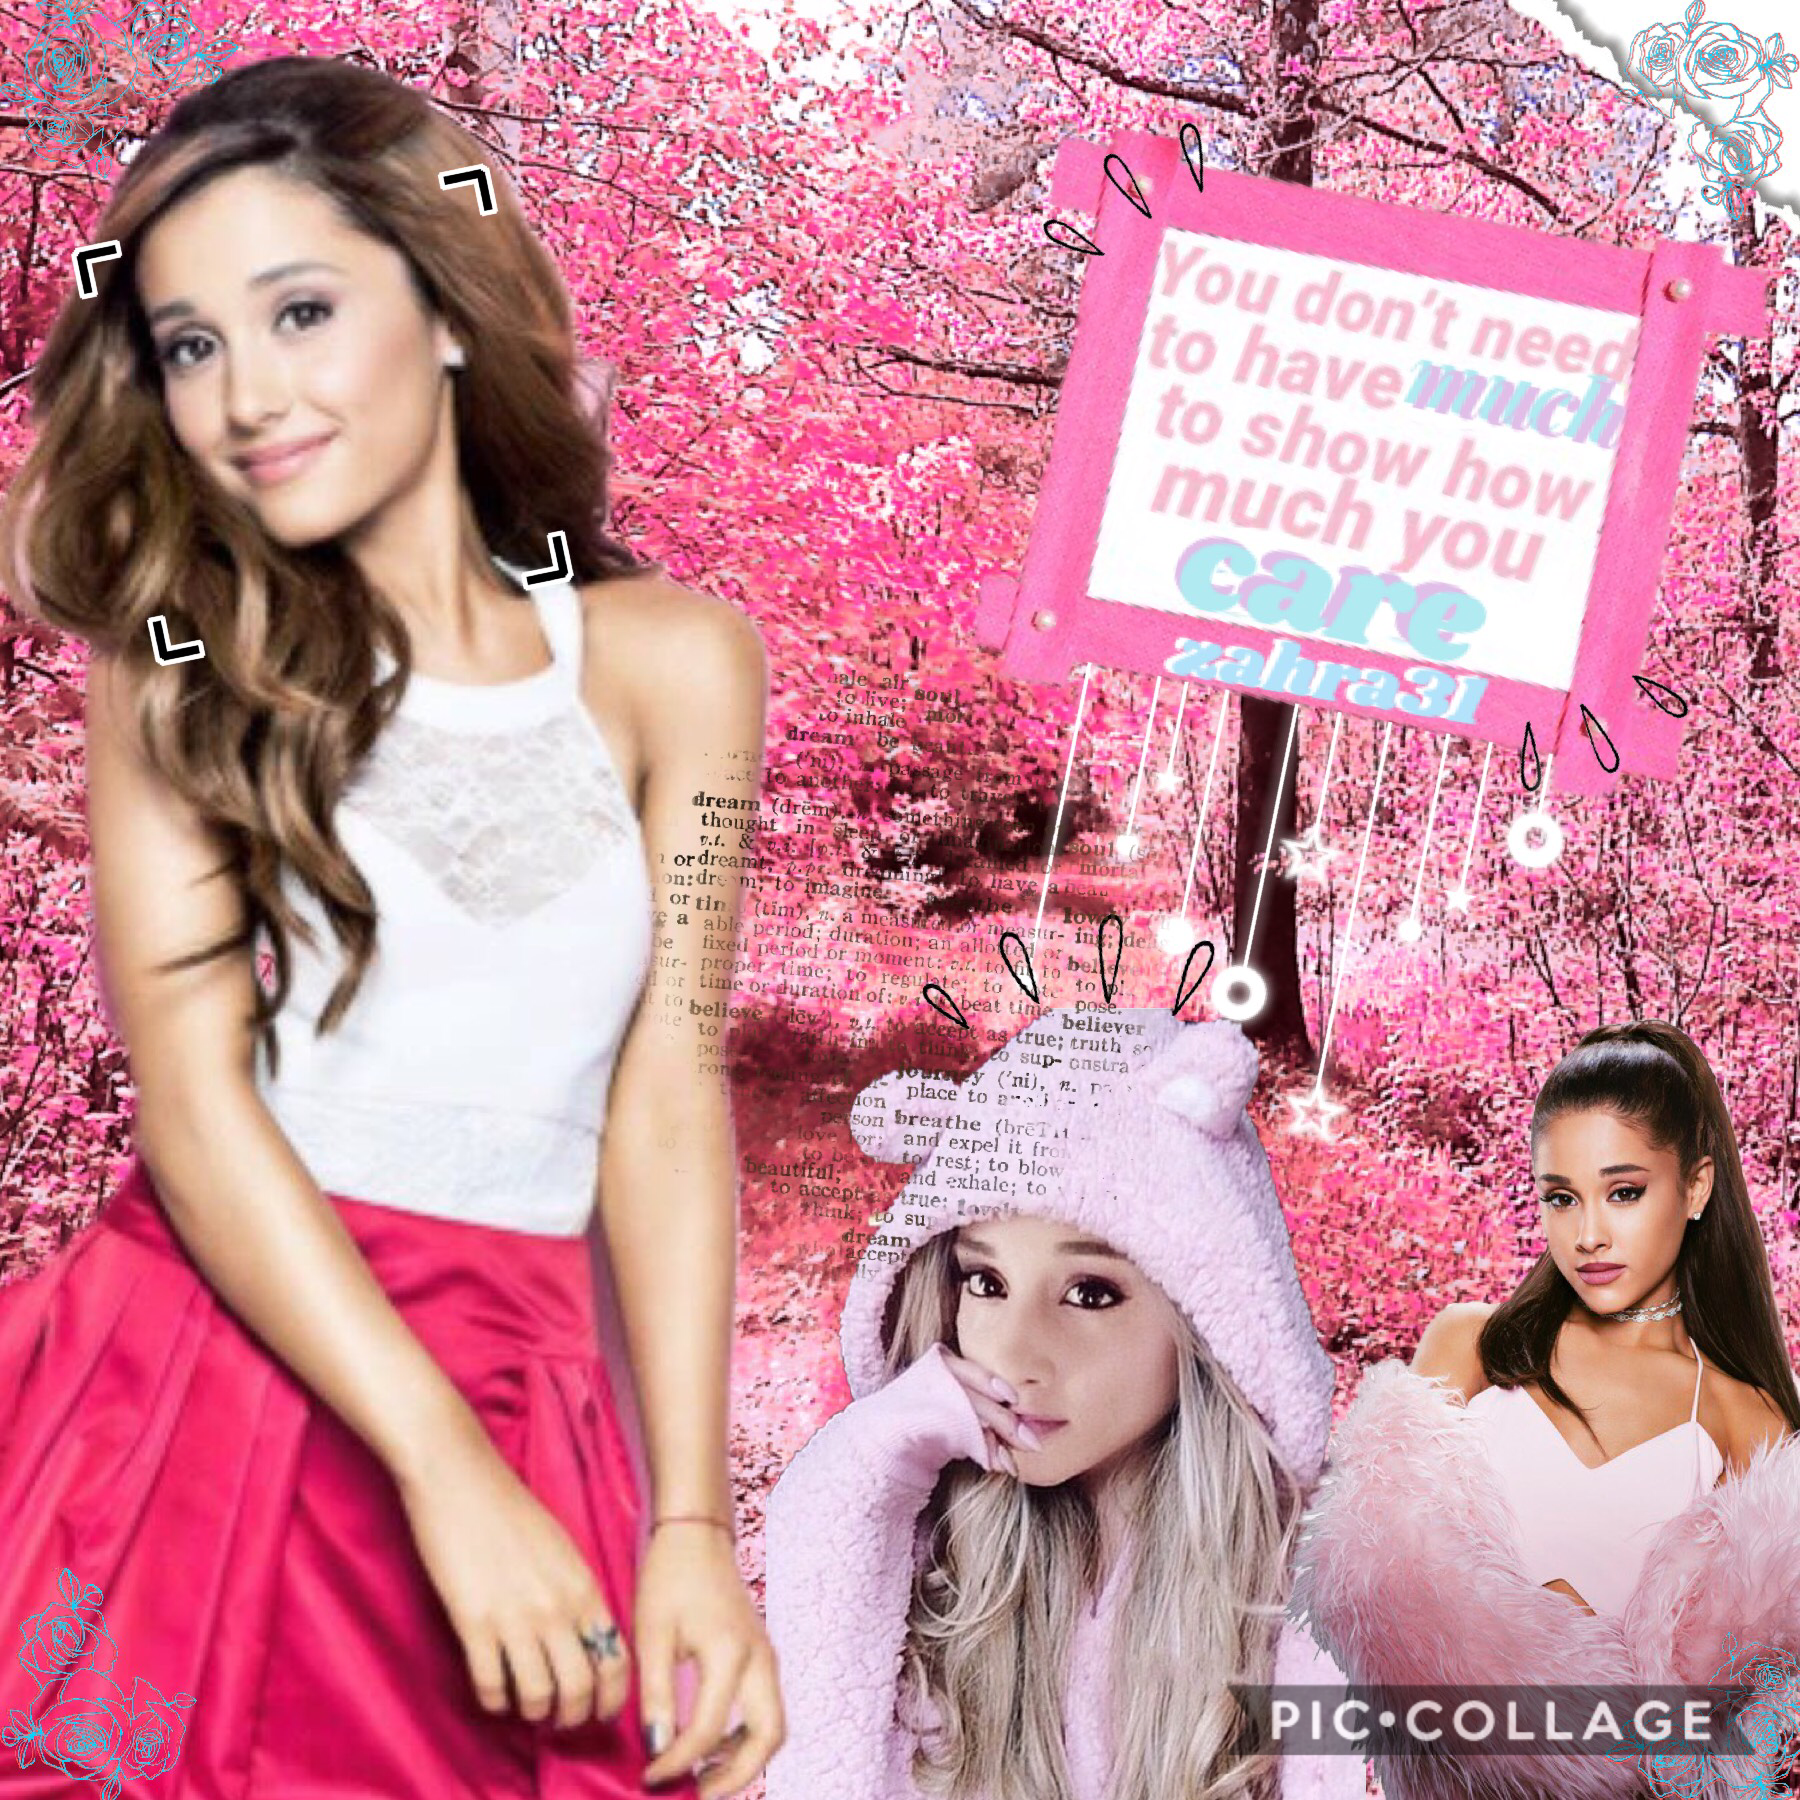 A really cute quote from Ariana grande 💖😊